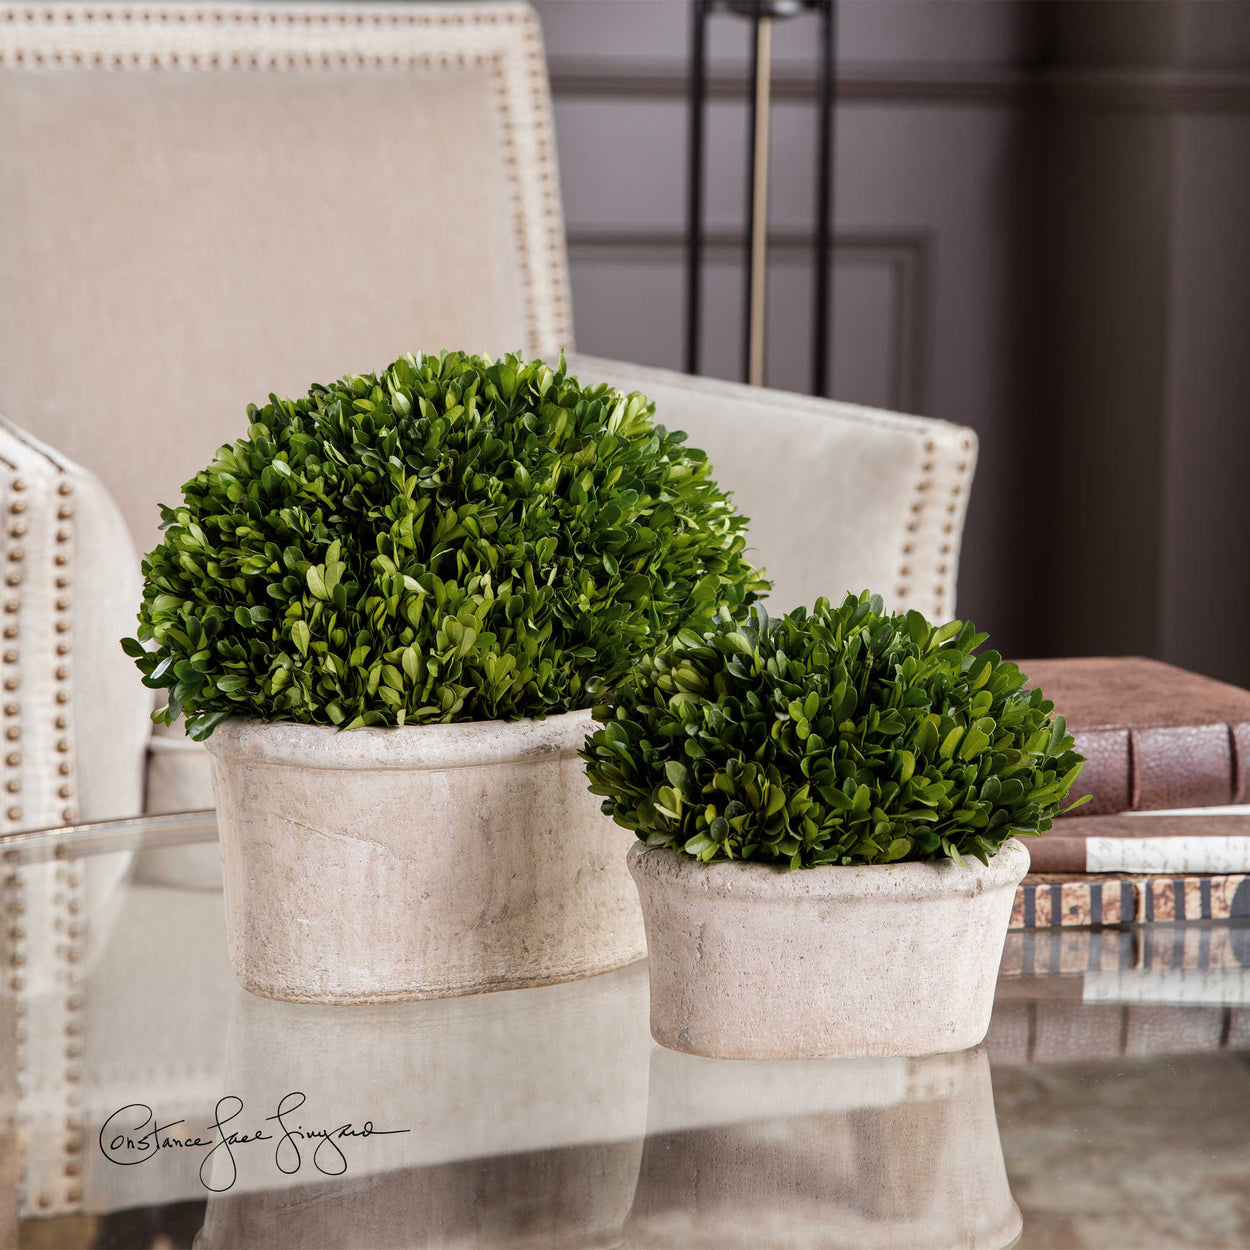 Preserved while freshly picked, natural evergreen foliage looks and feels like living boxwood potted in mossy, stone finished terracotta planters. Sizes: sm- 10x8x6, lg-14x12x8 Indoor use only.